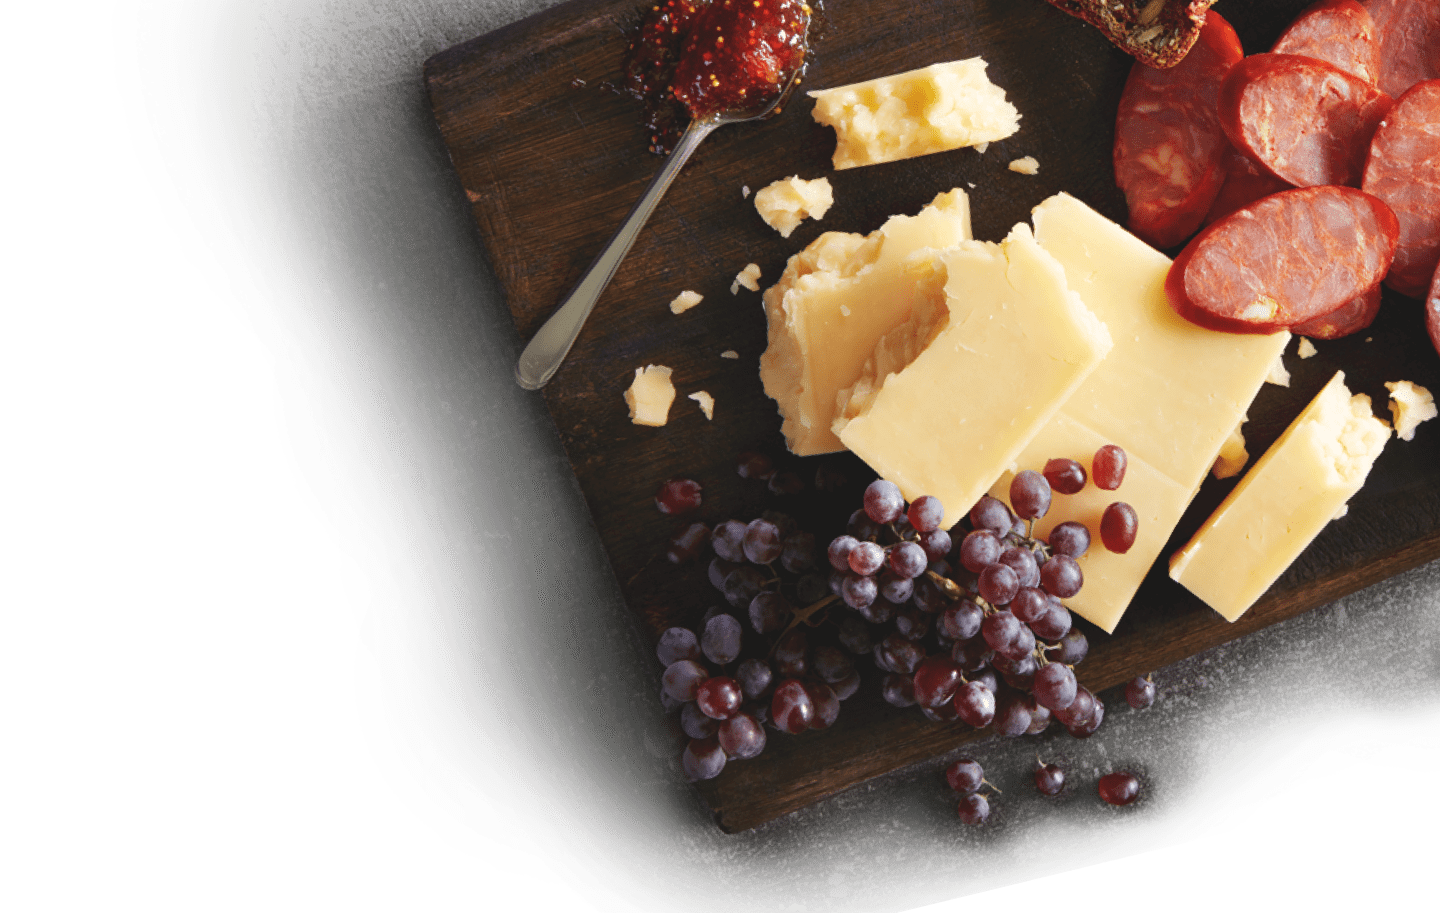 RICH & BOLD Cheese pairings